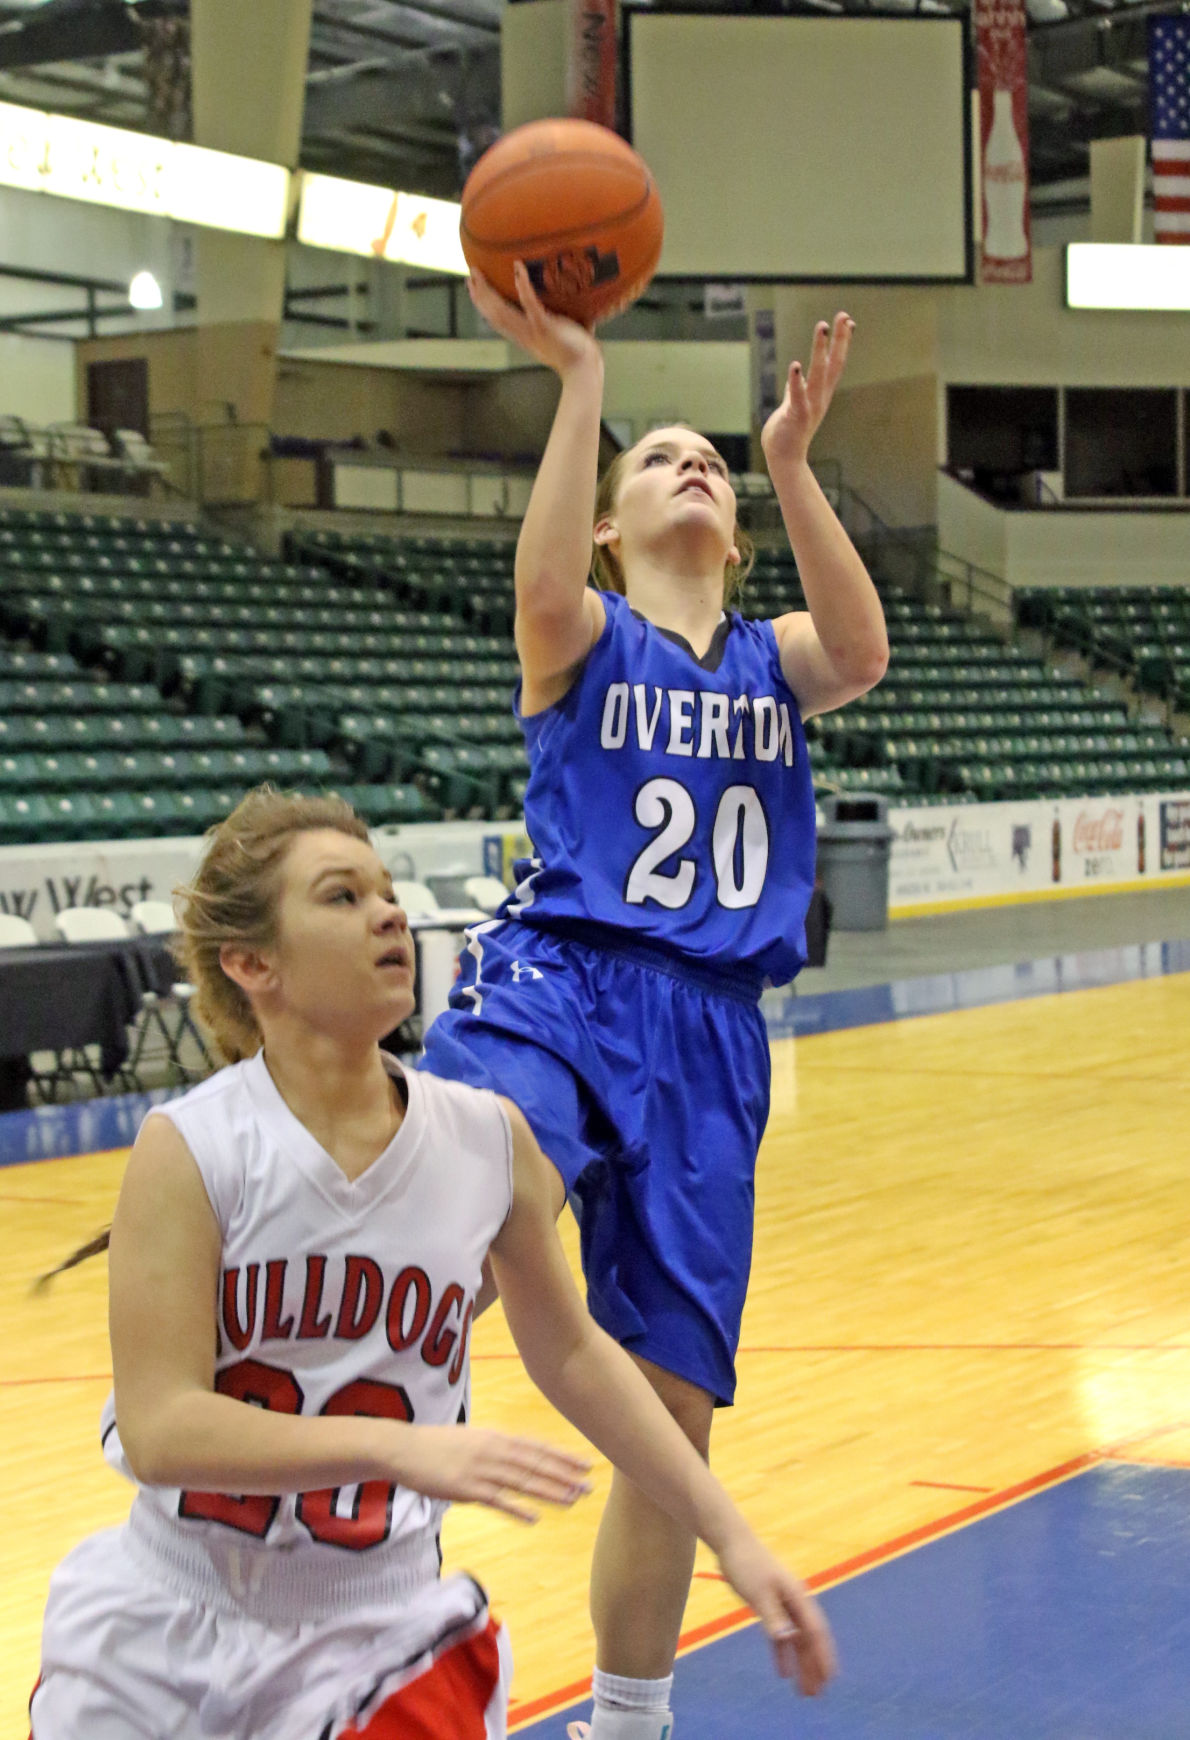 overton girls View the league standings and articles for the overton wolverines girls  basketball team on maxpreps.